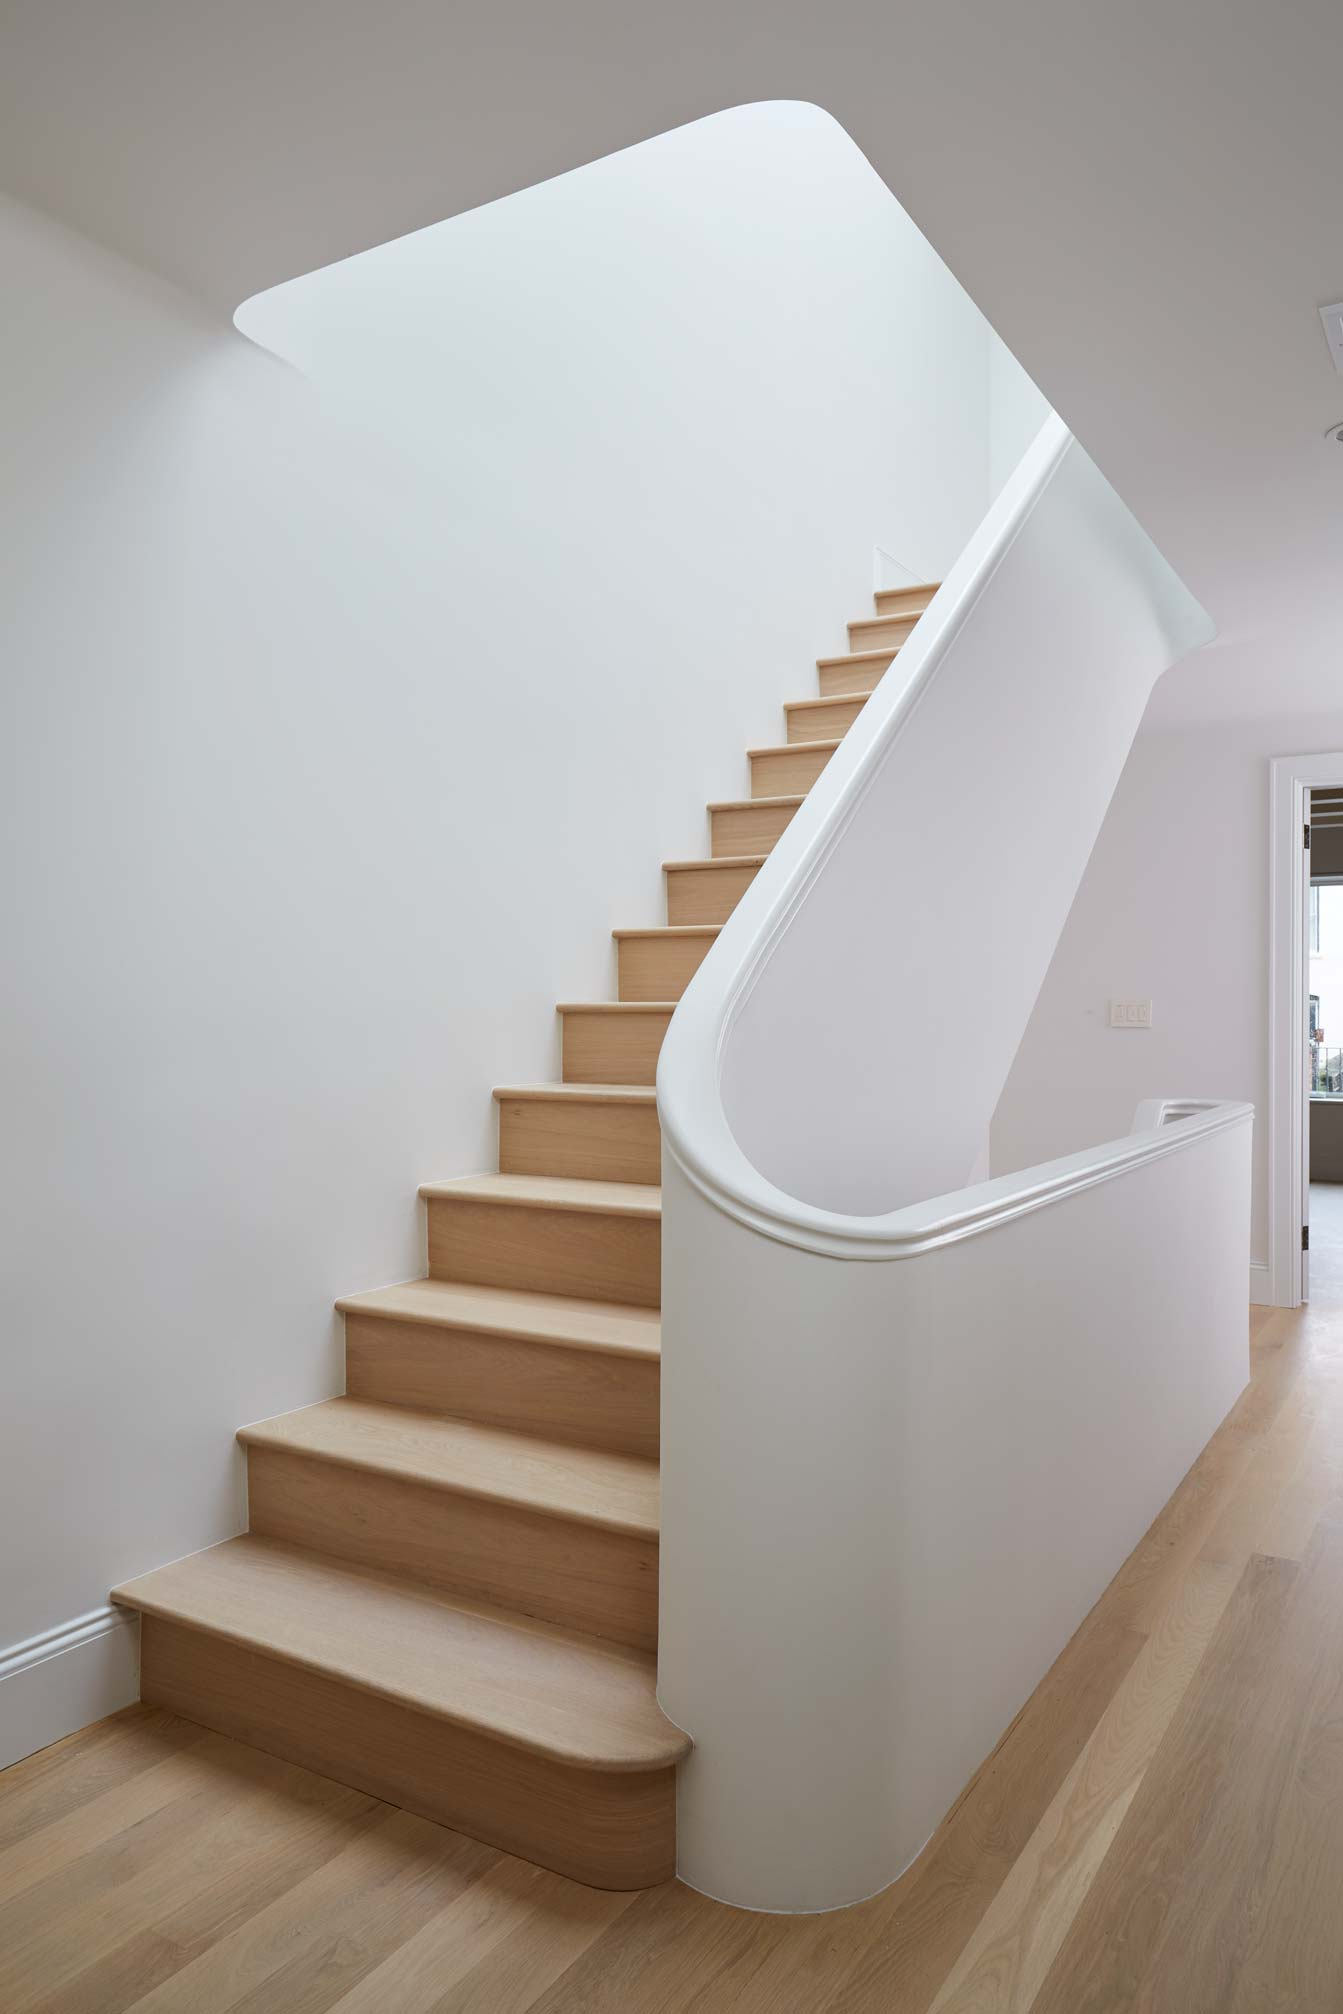 2nd_floor_stairs_024.jpg